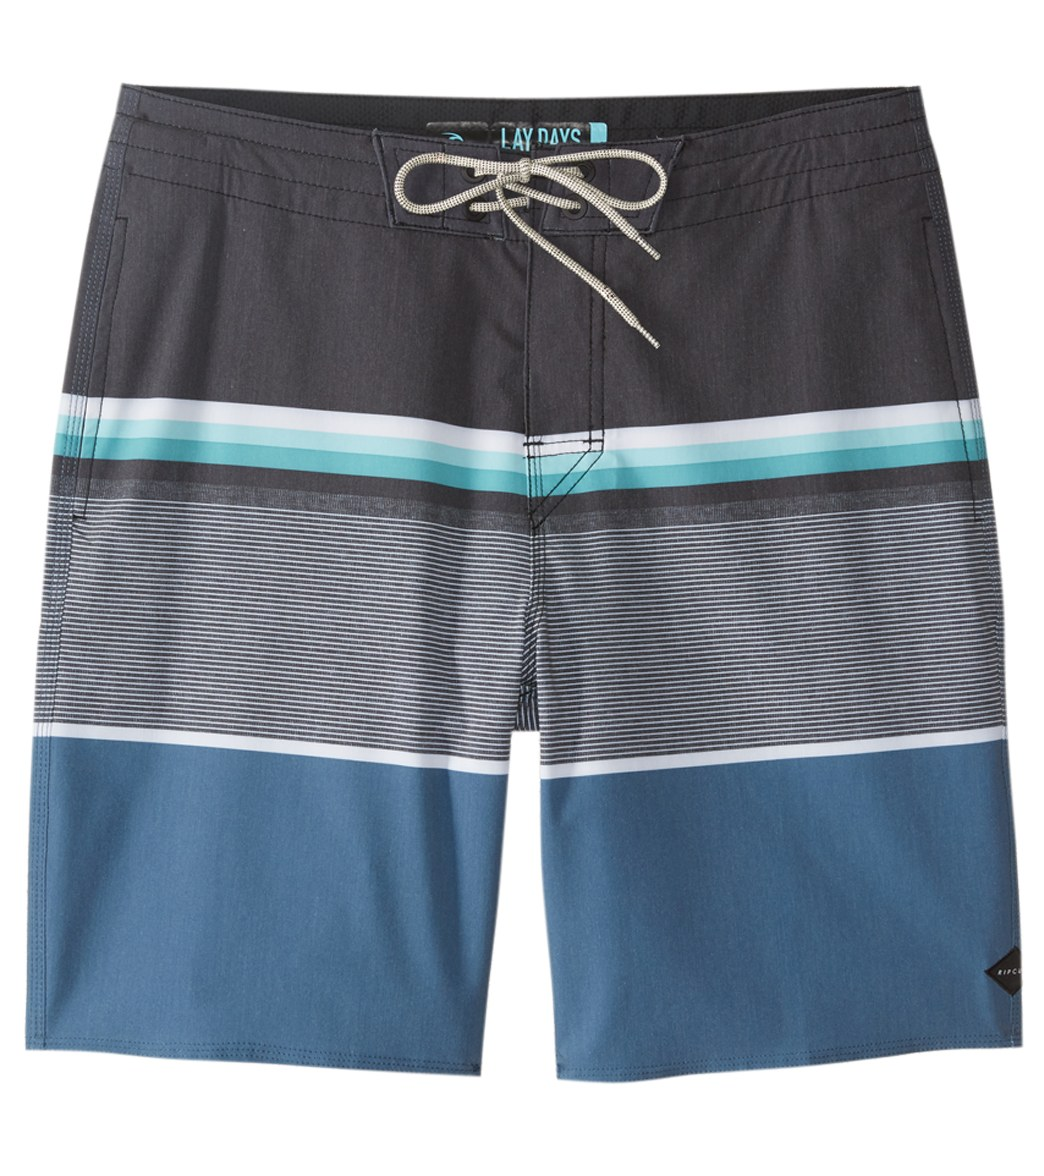 b4ca4fbb1a Rip Curl Men's Rapture Layday Boardshort at SwimOutlet.com - Free Shipping